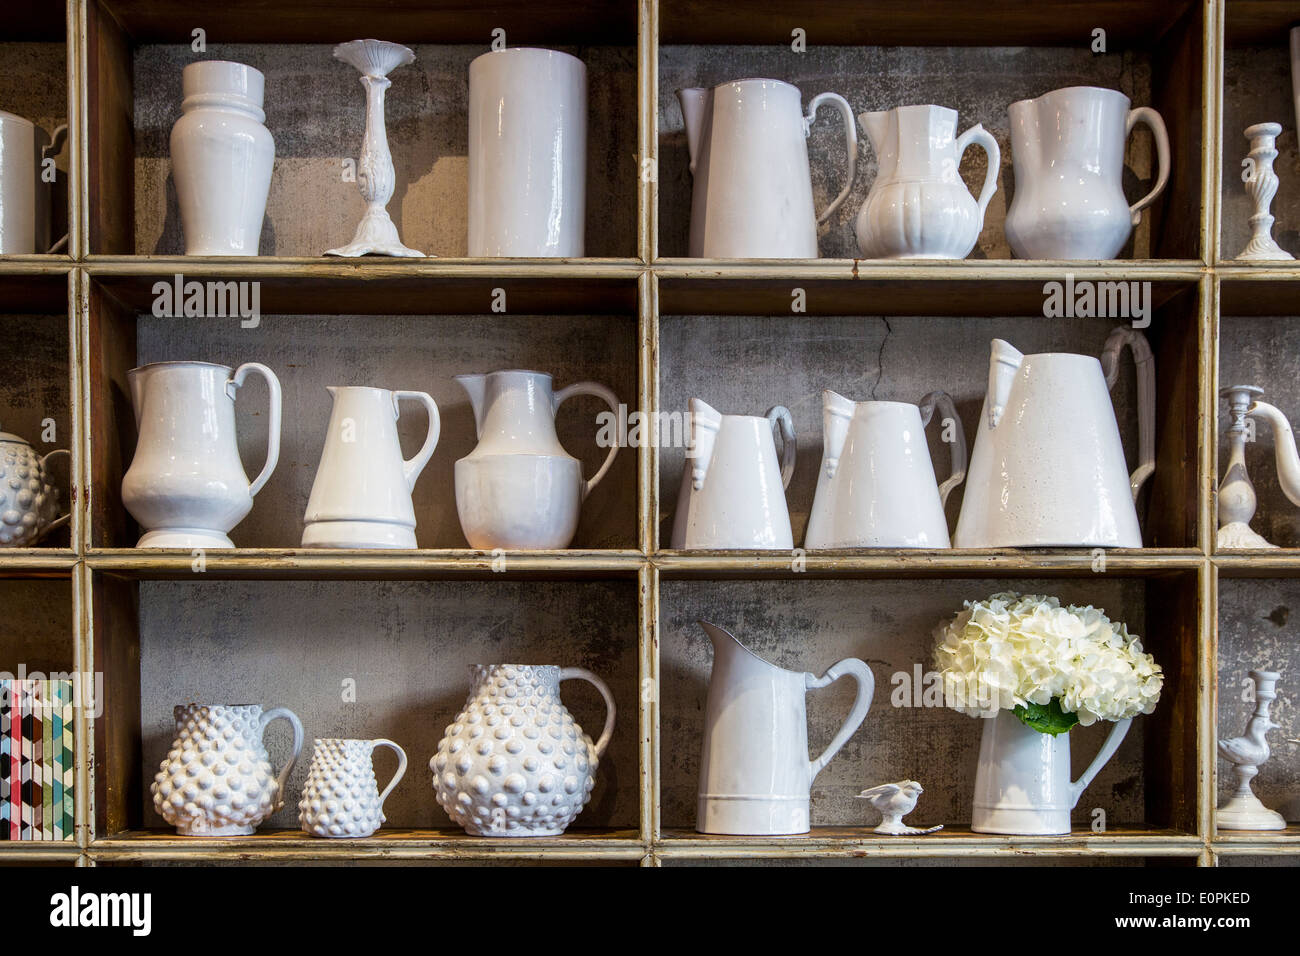 hand made pottery by designer astier de villatte on display at their stock photo 69339717 alamy. Black Bedroom Furniture Sets. Home Design Ideas